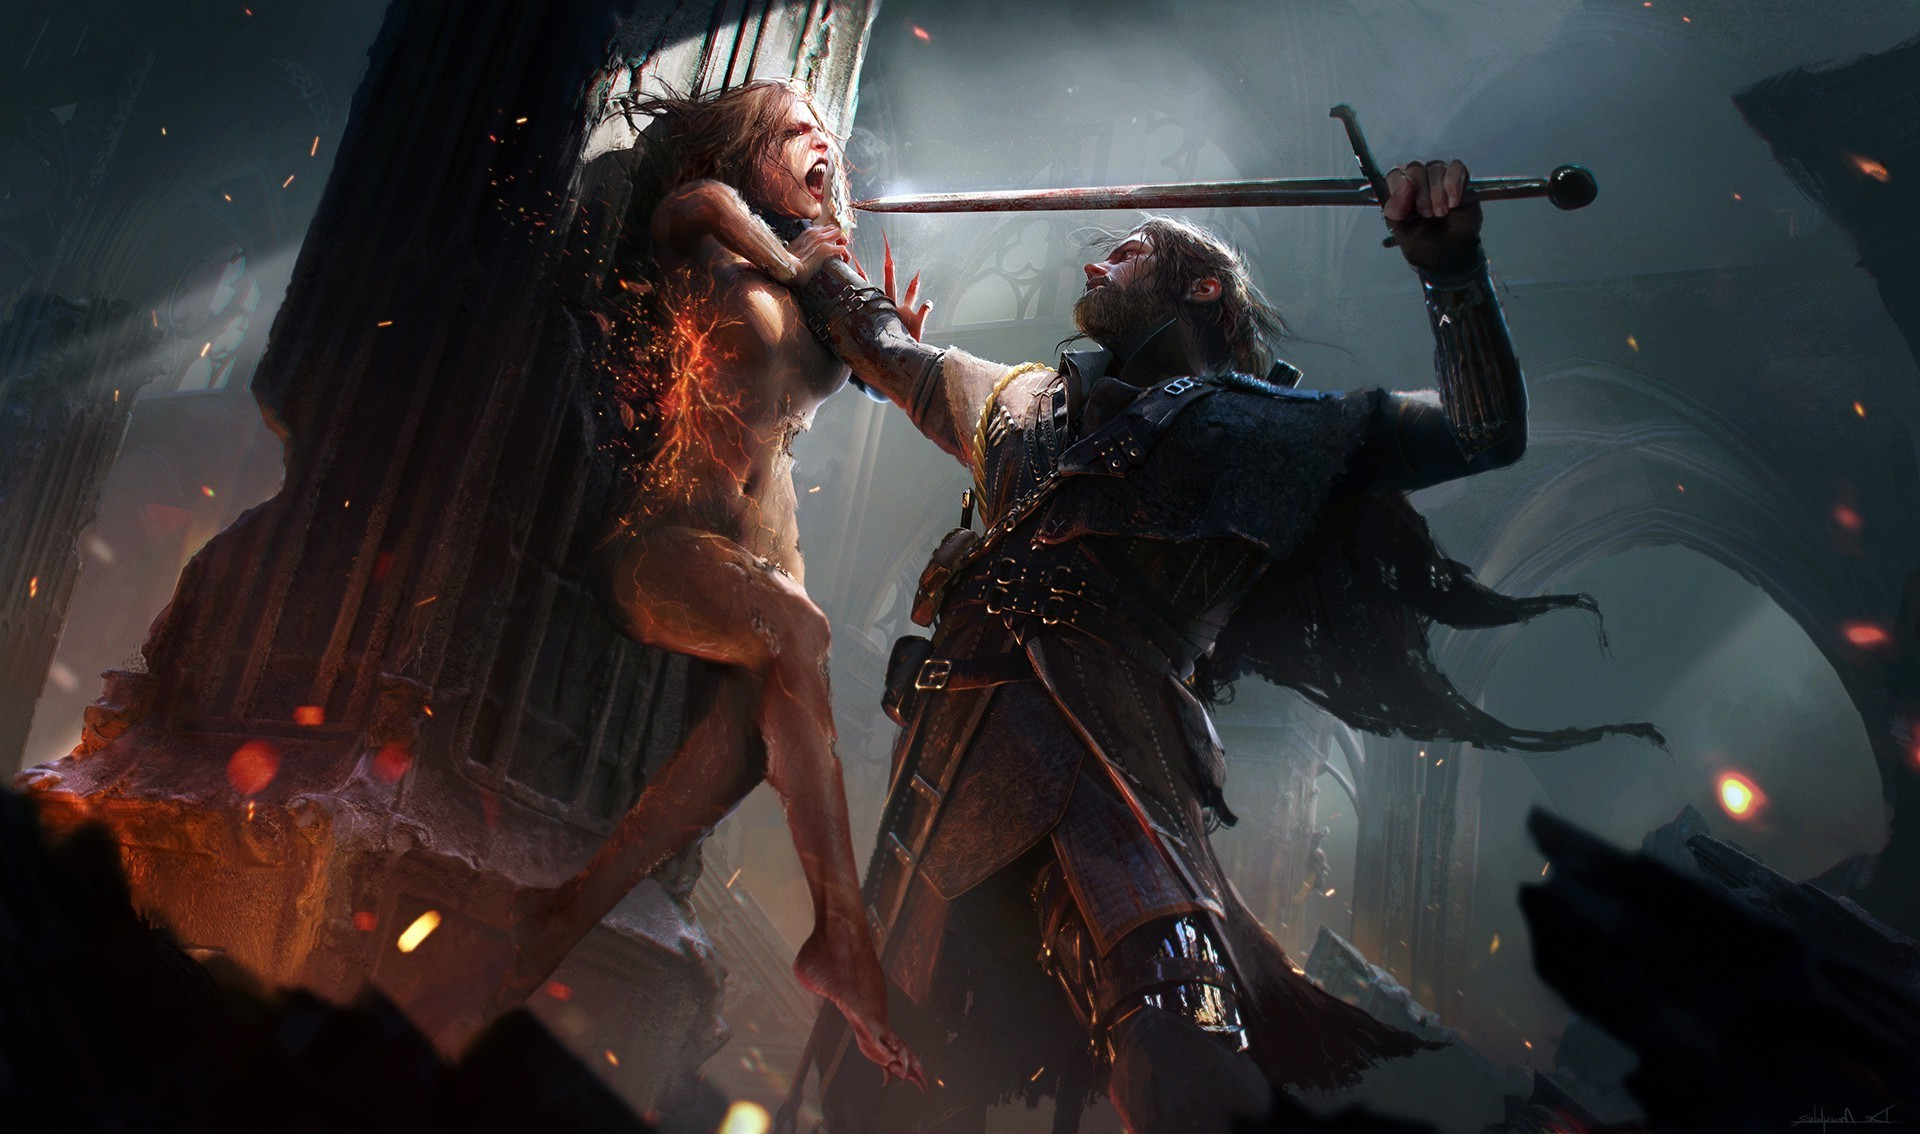 The witcher wallpaper 81 pictures - Fantasy wallpaper 3440x1440 ...